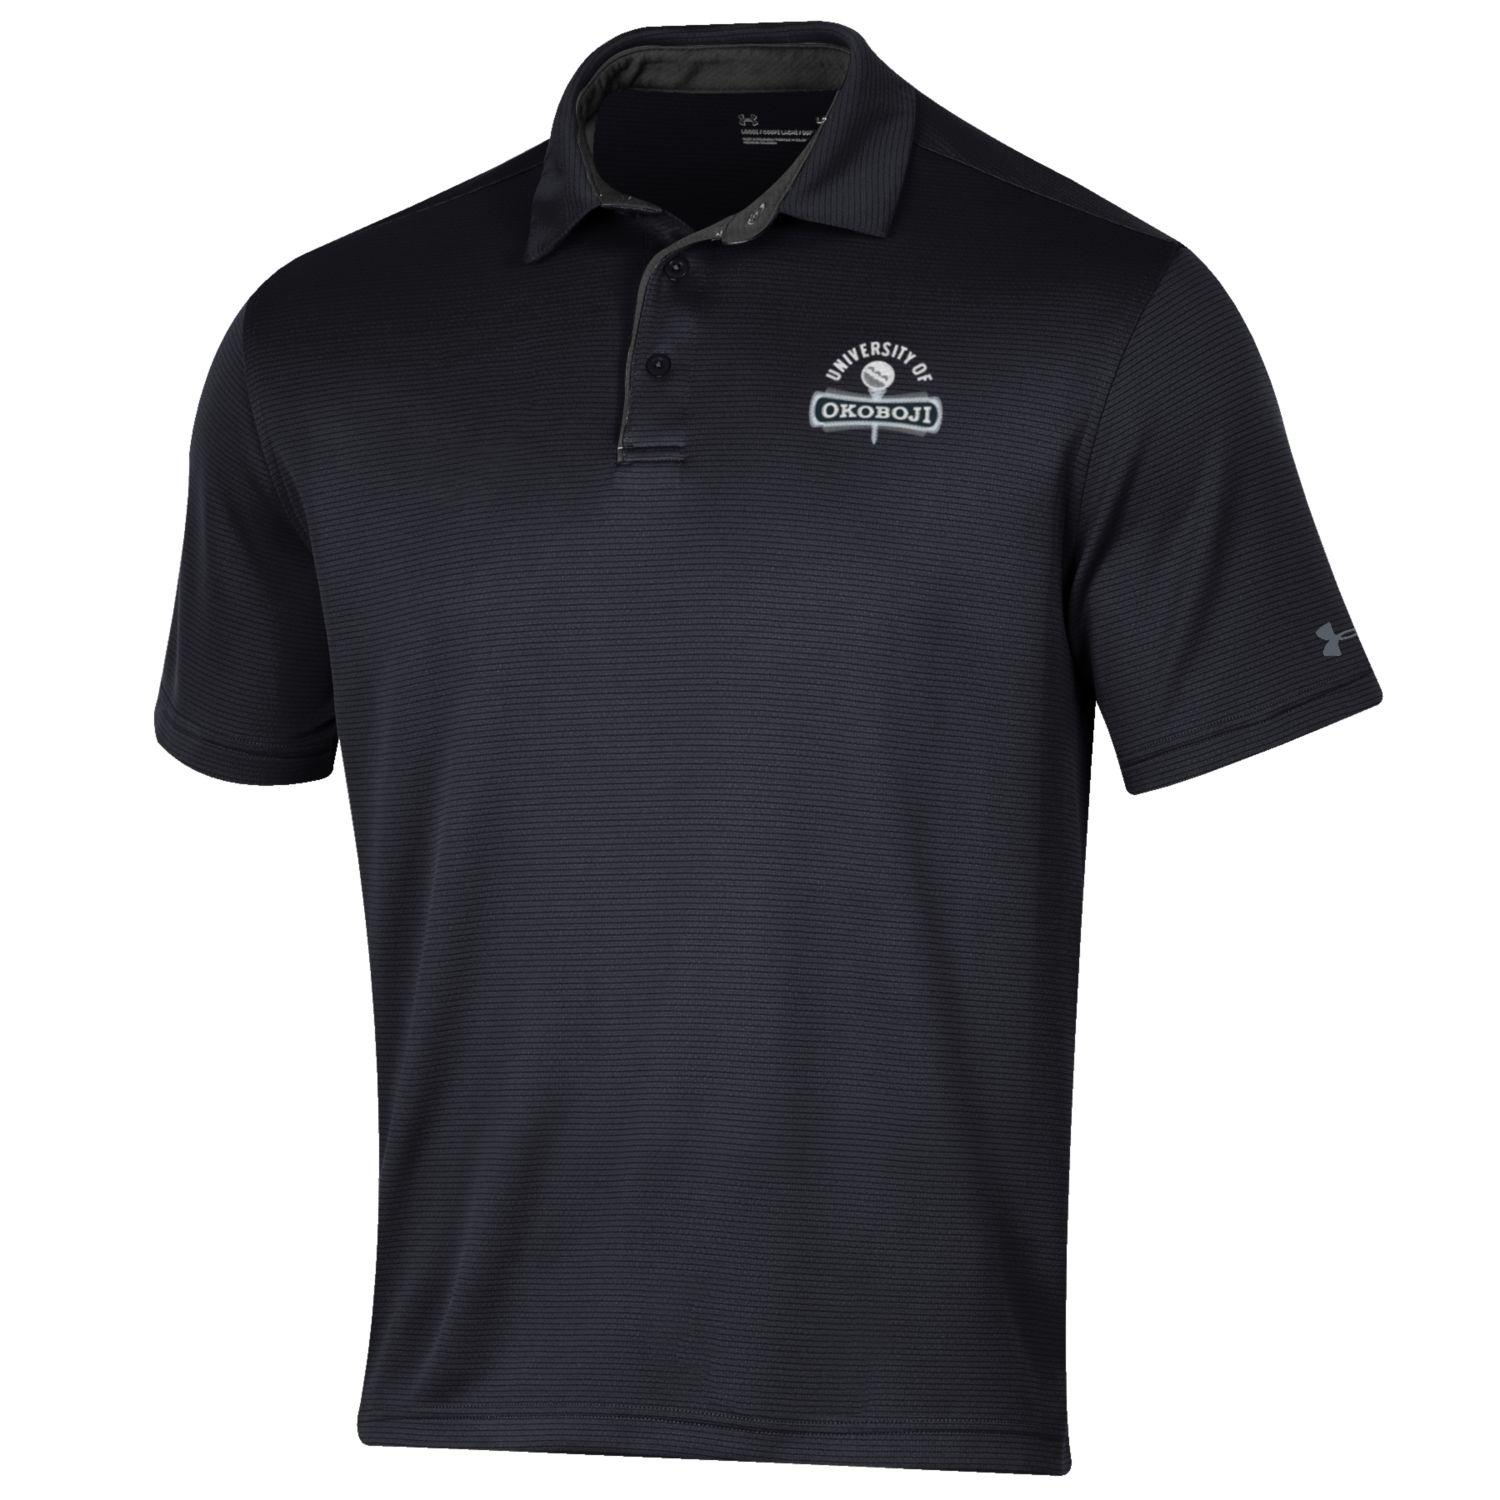 Okoboji Under Armour Tech Polo - Black